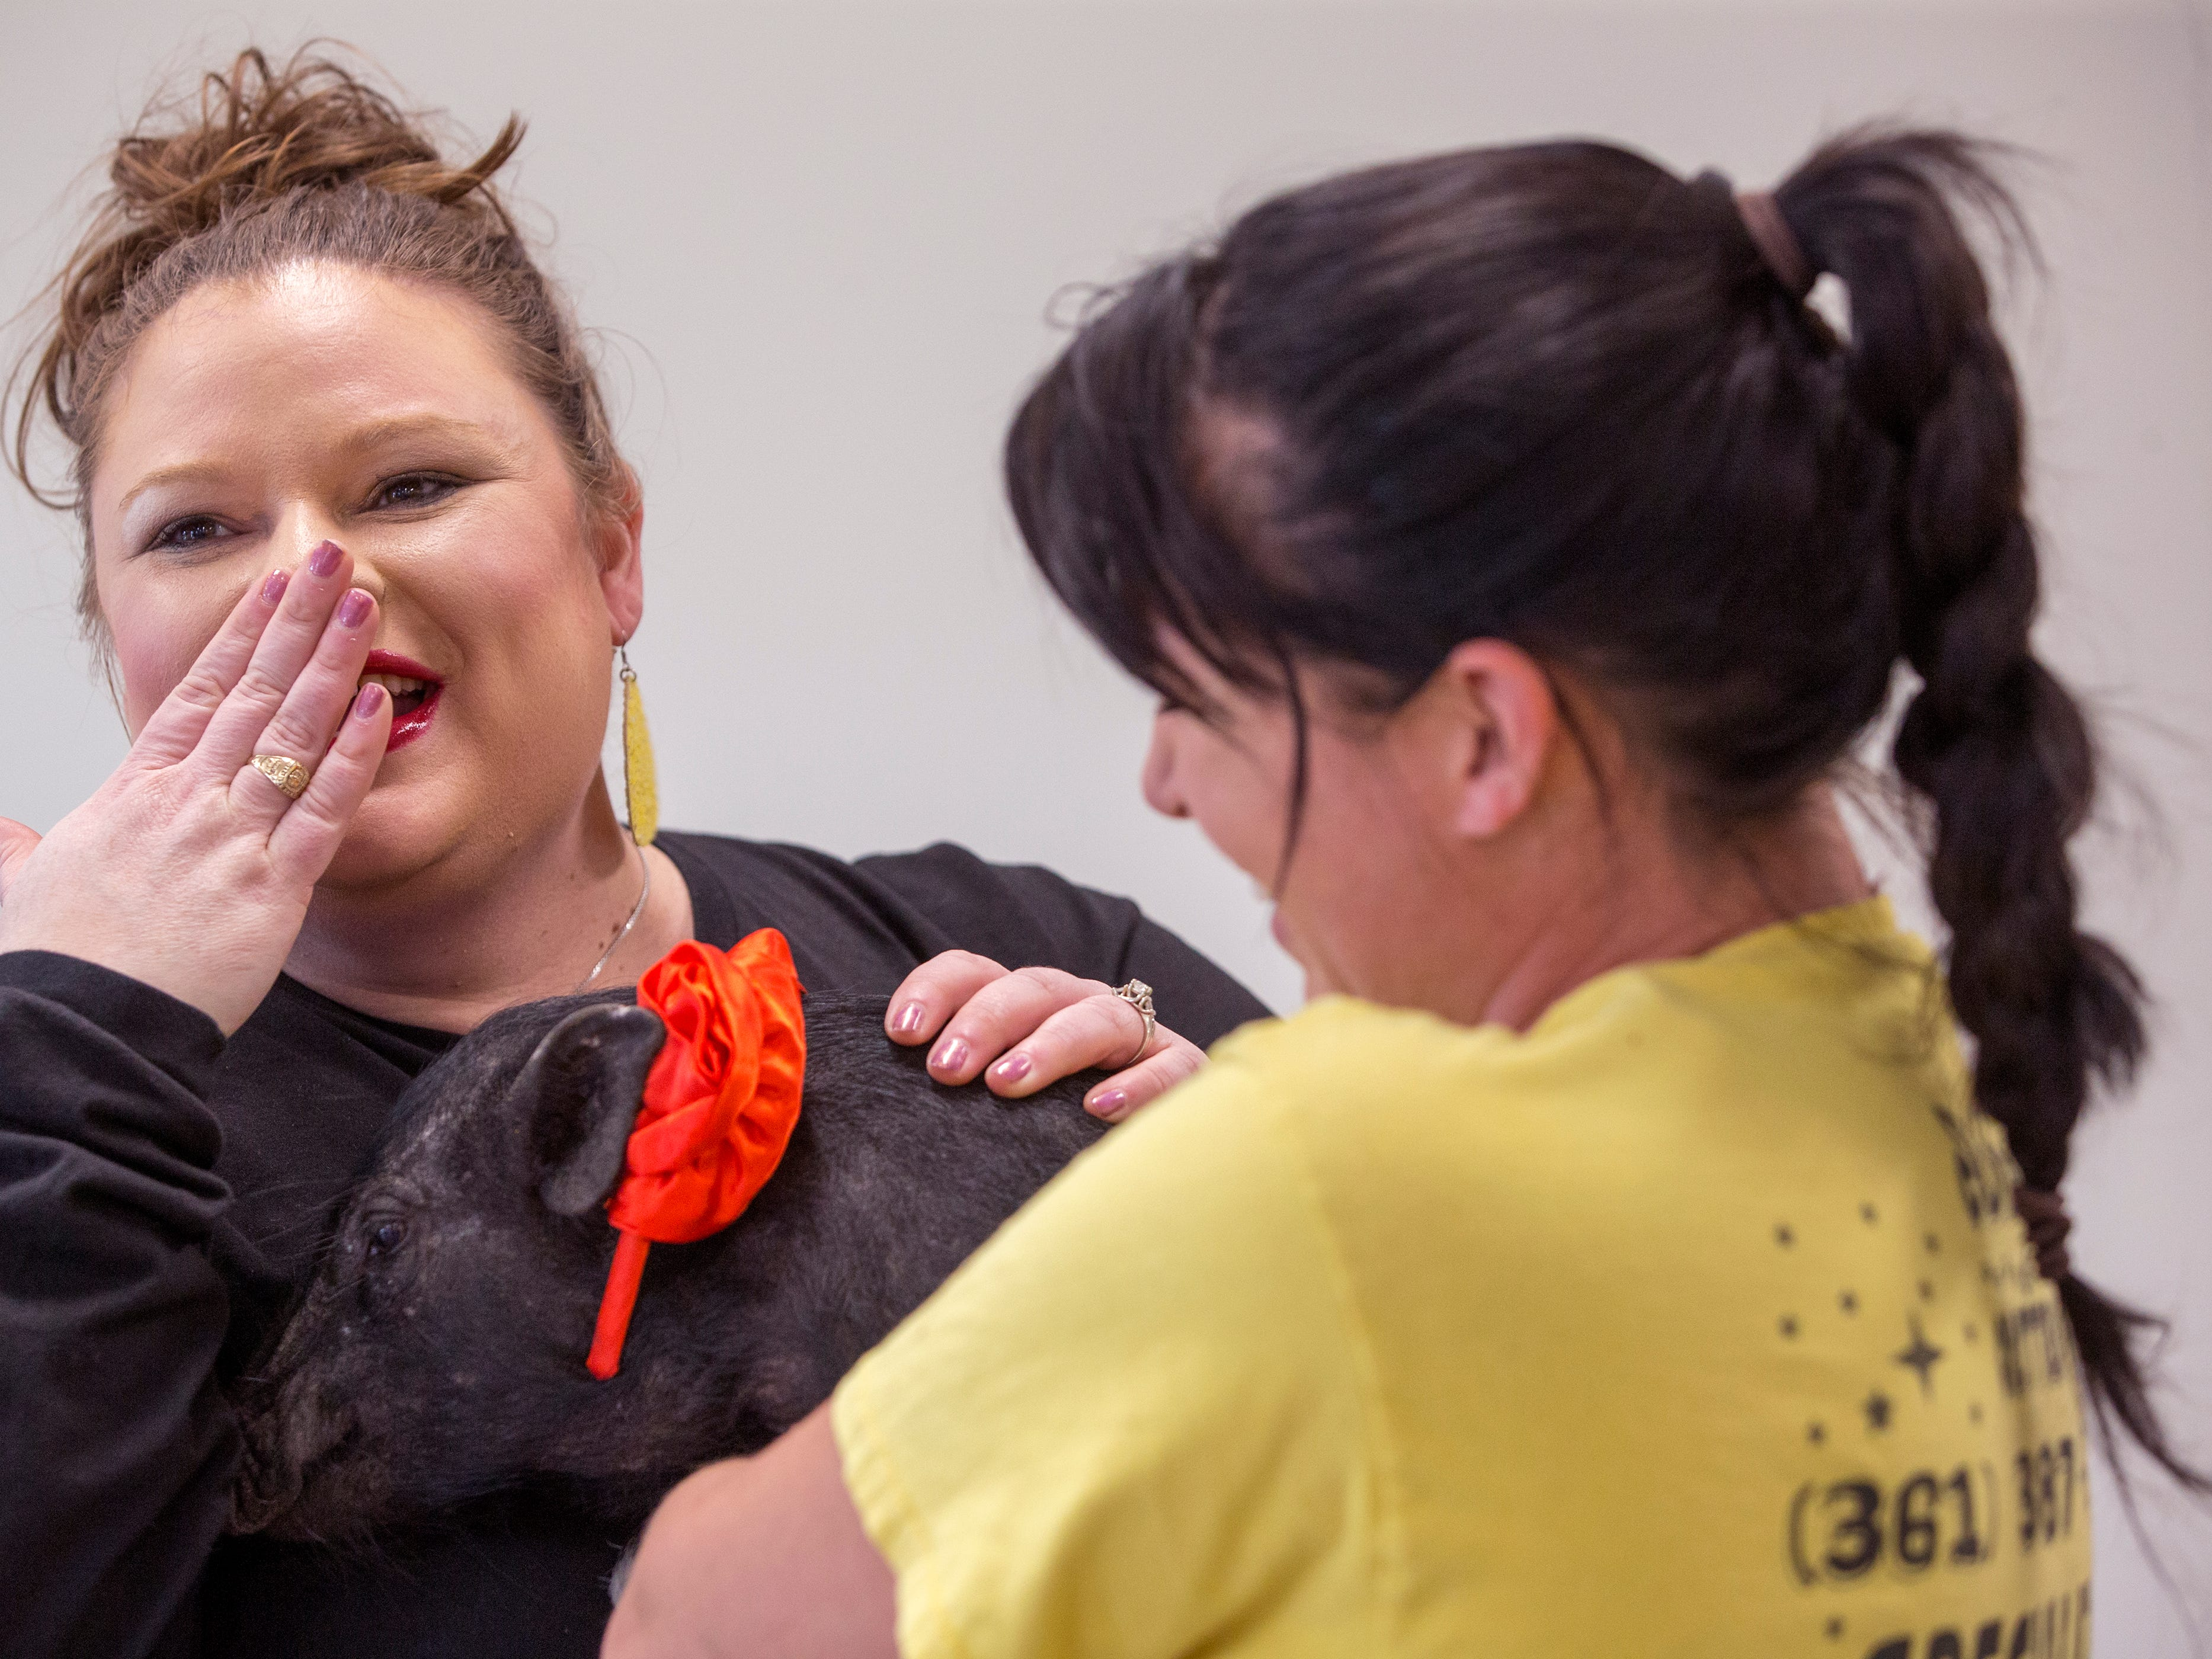 Rise School of Corpus Christi Executive Vanessa Nisbet (left) reacts after kissing Hammy, held by Jonna Rains, on Friday, March 8, 2019. She promised students she would kiss a pig if parents raised over $50,000 at the school's annual 5K, they raised close to $80,000.